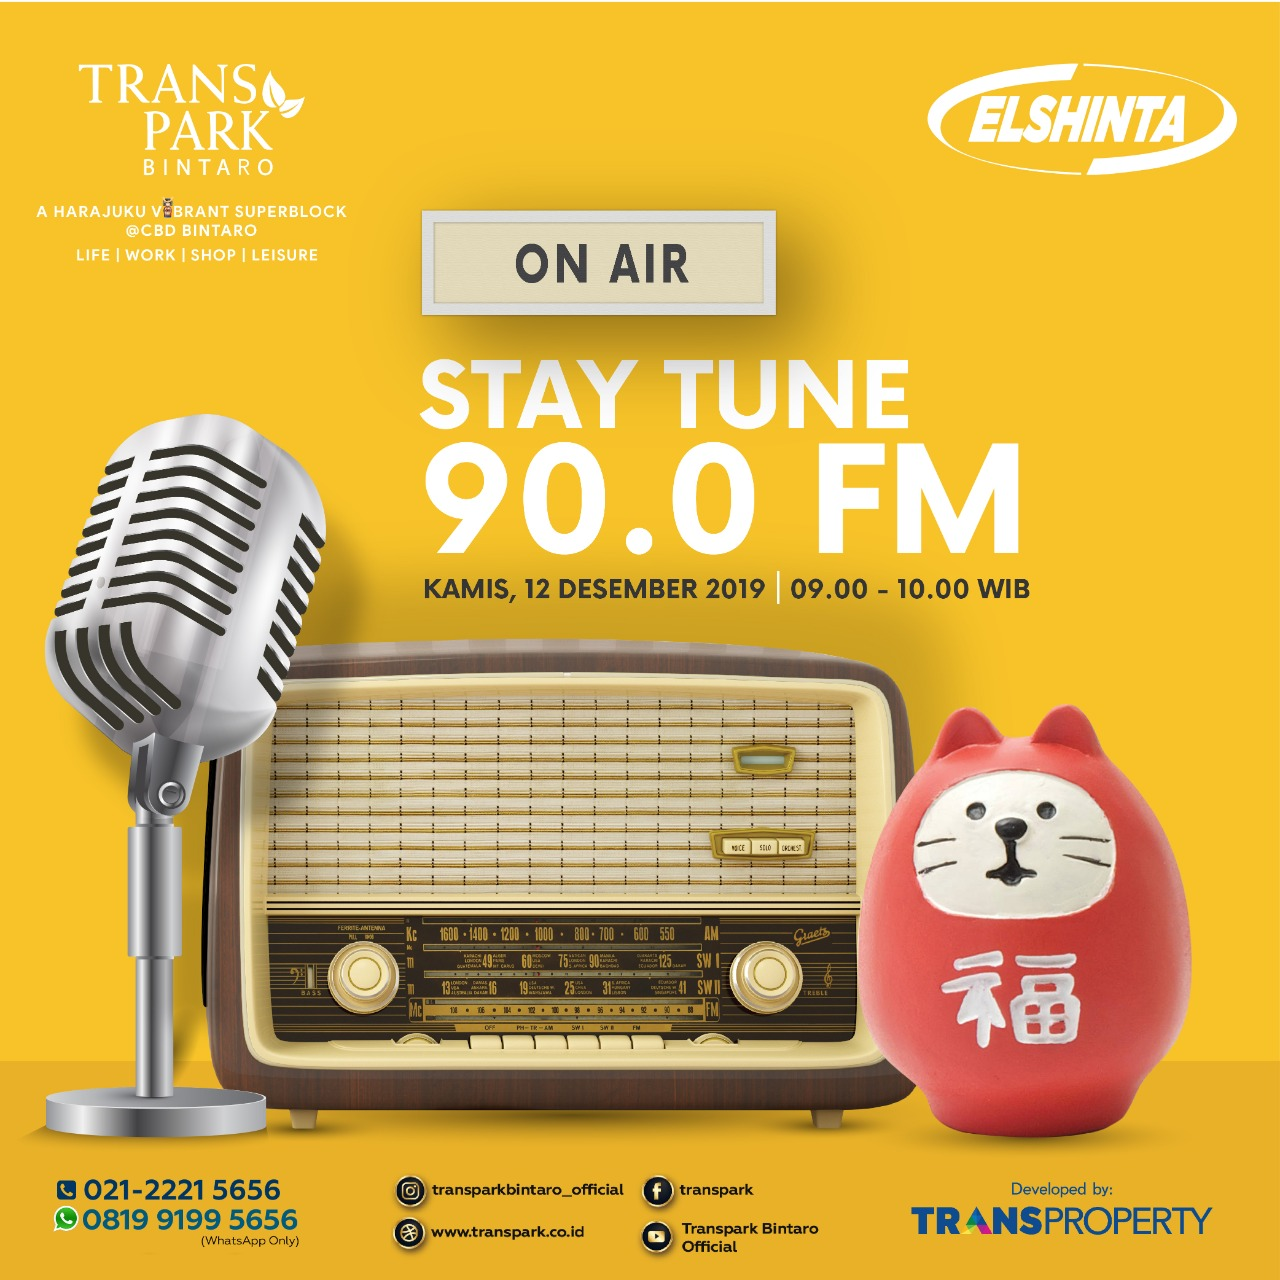 Stay Tune On Air At Elshinta 90.0 FM 12 Desember 2019